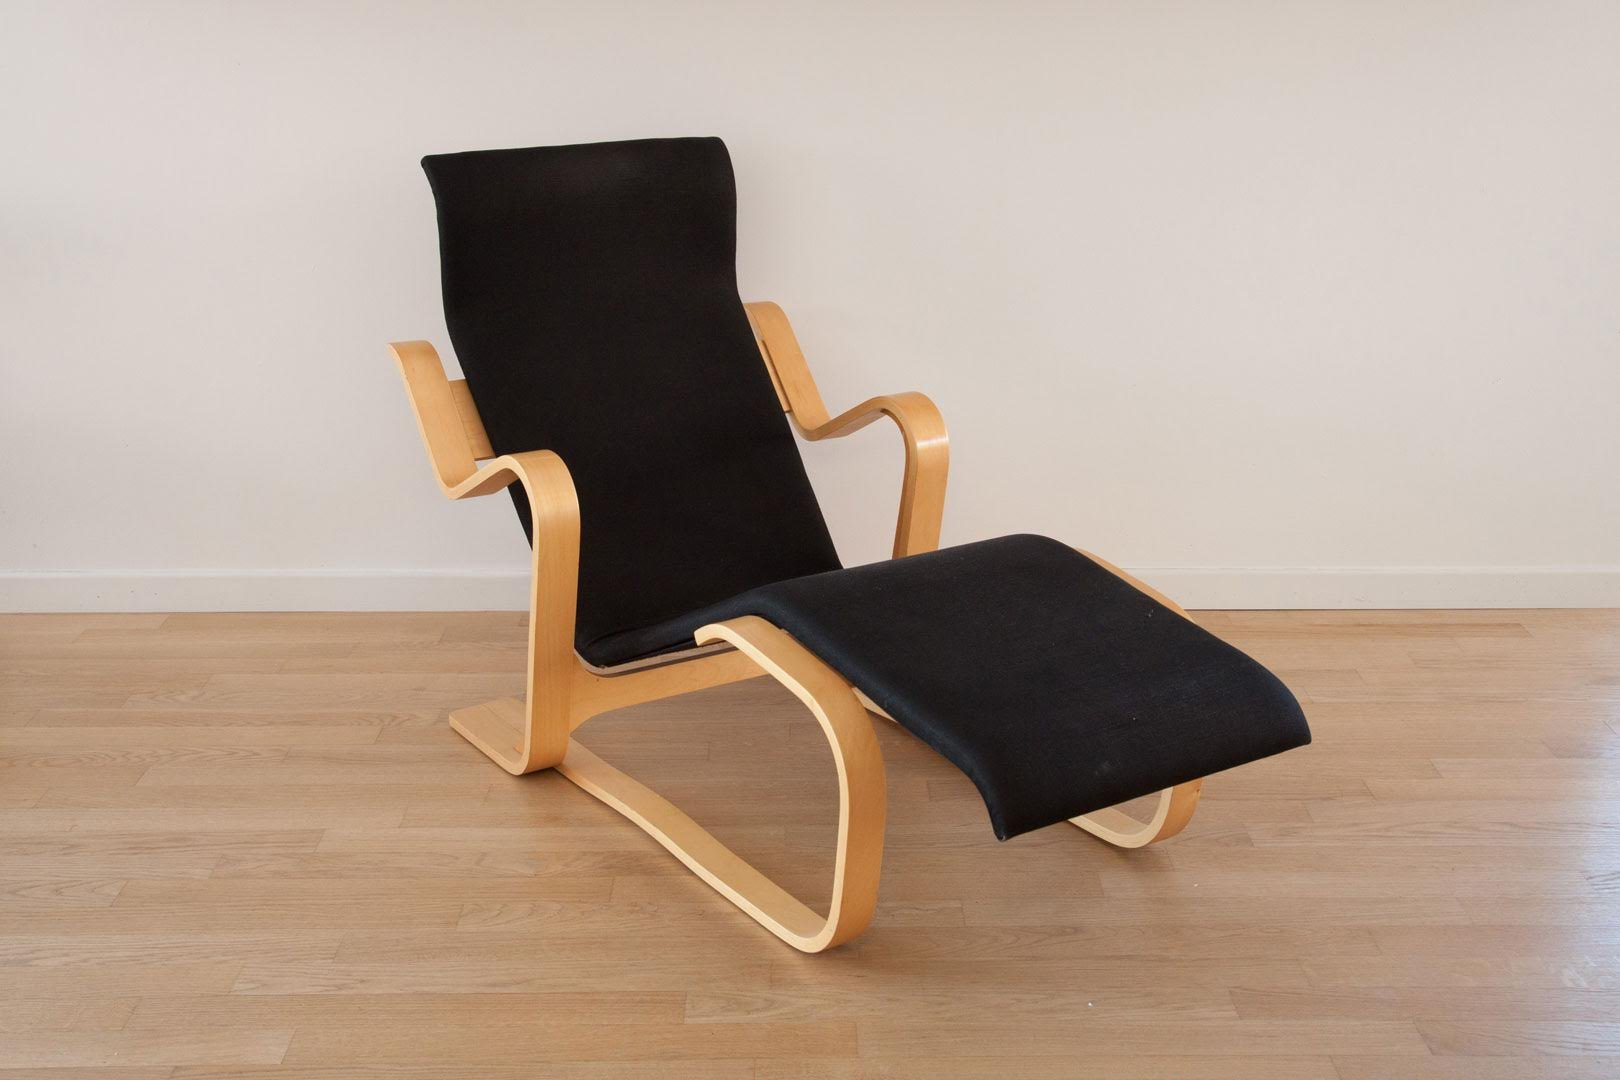 vintage chaise lounge by marcel breuer 1930s for sale at